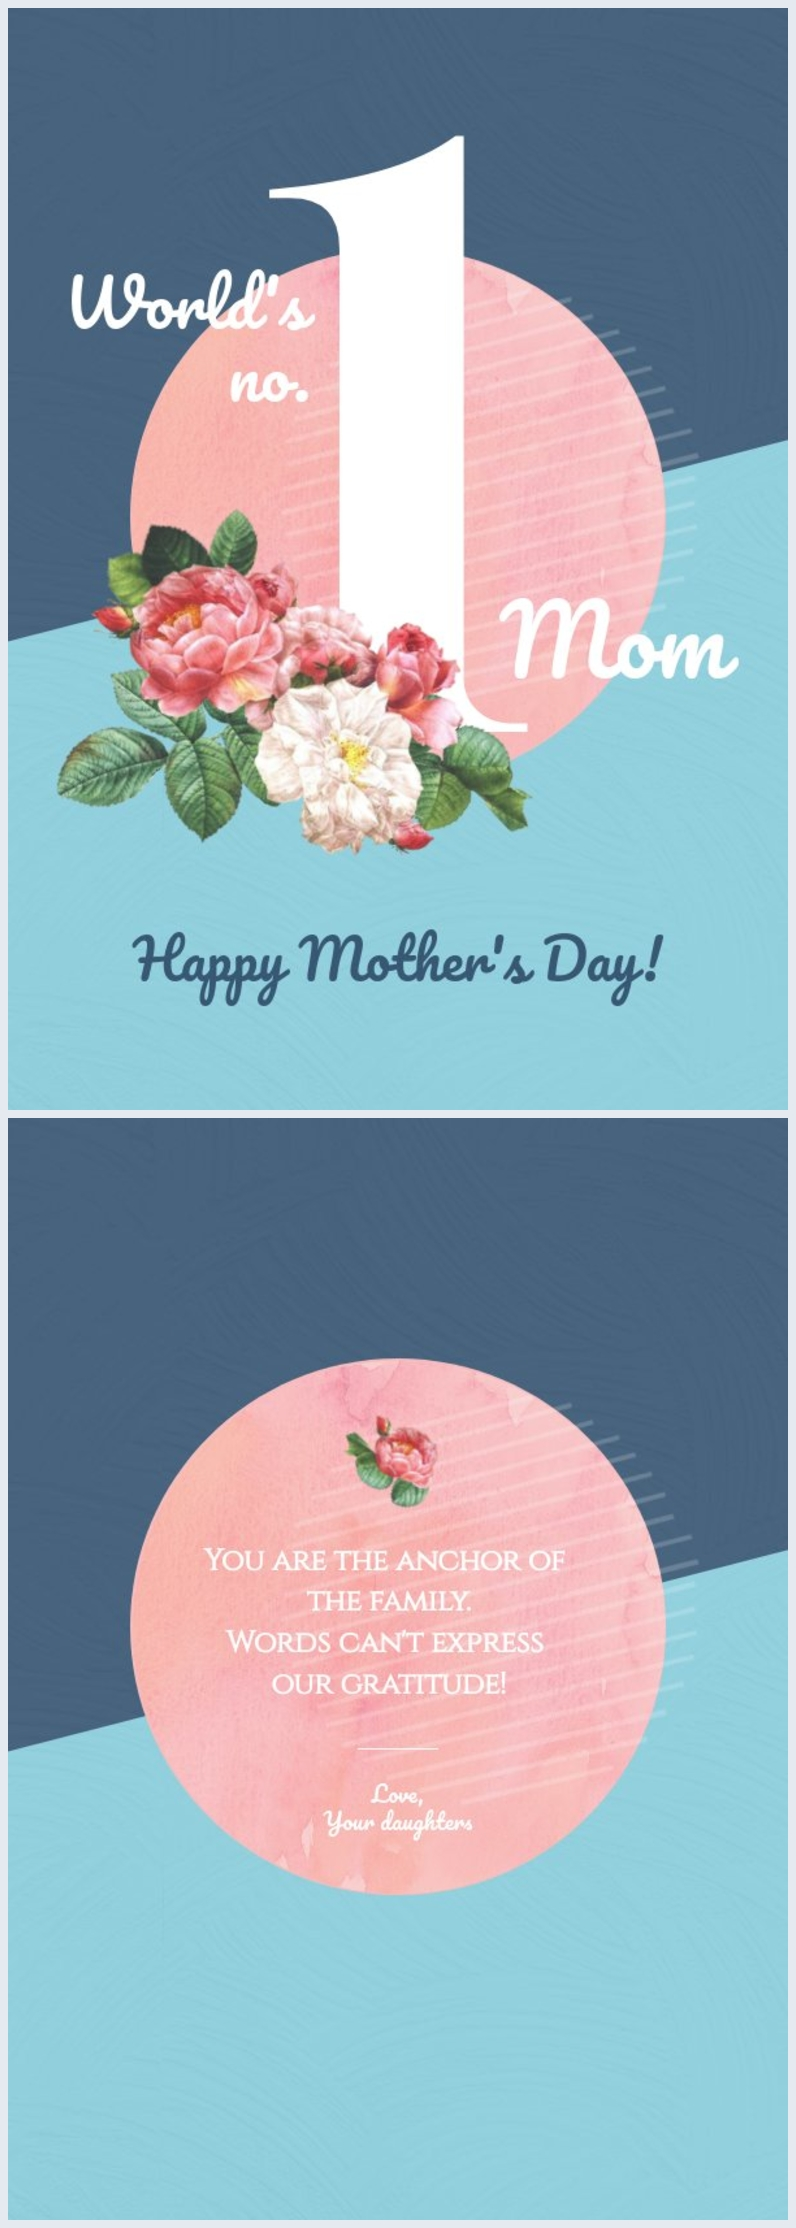 Creative Mother's Day card layout example